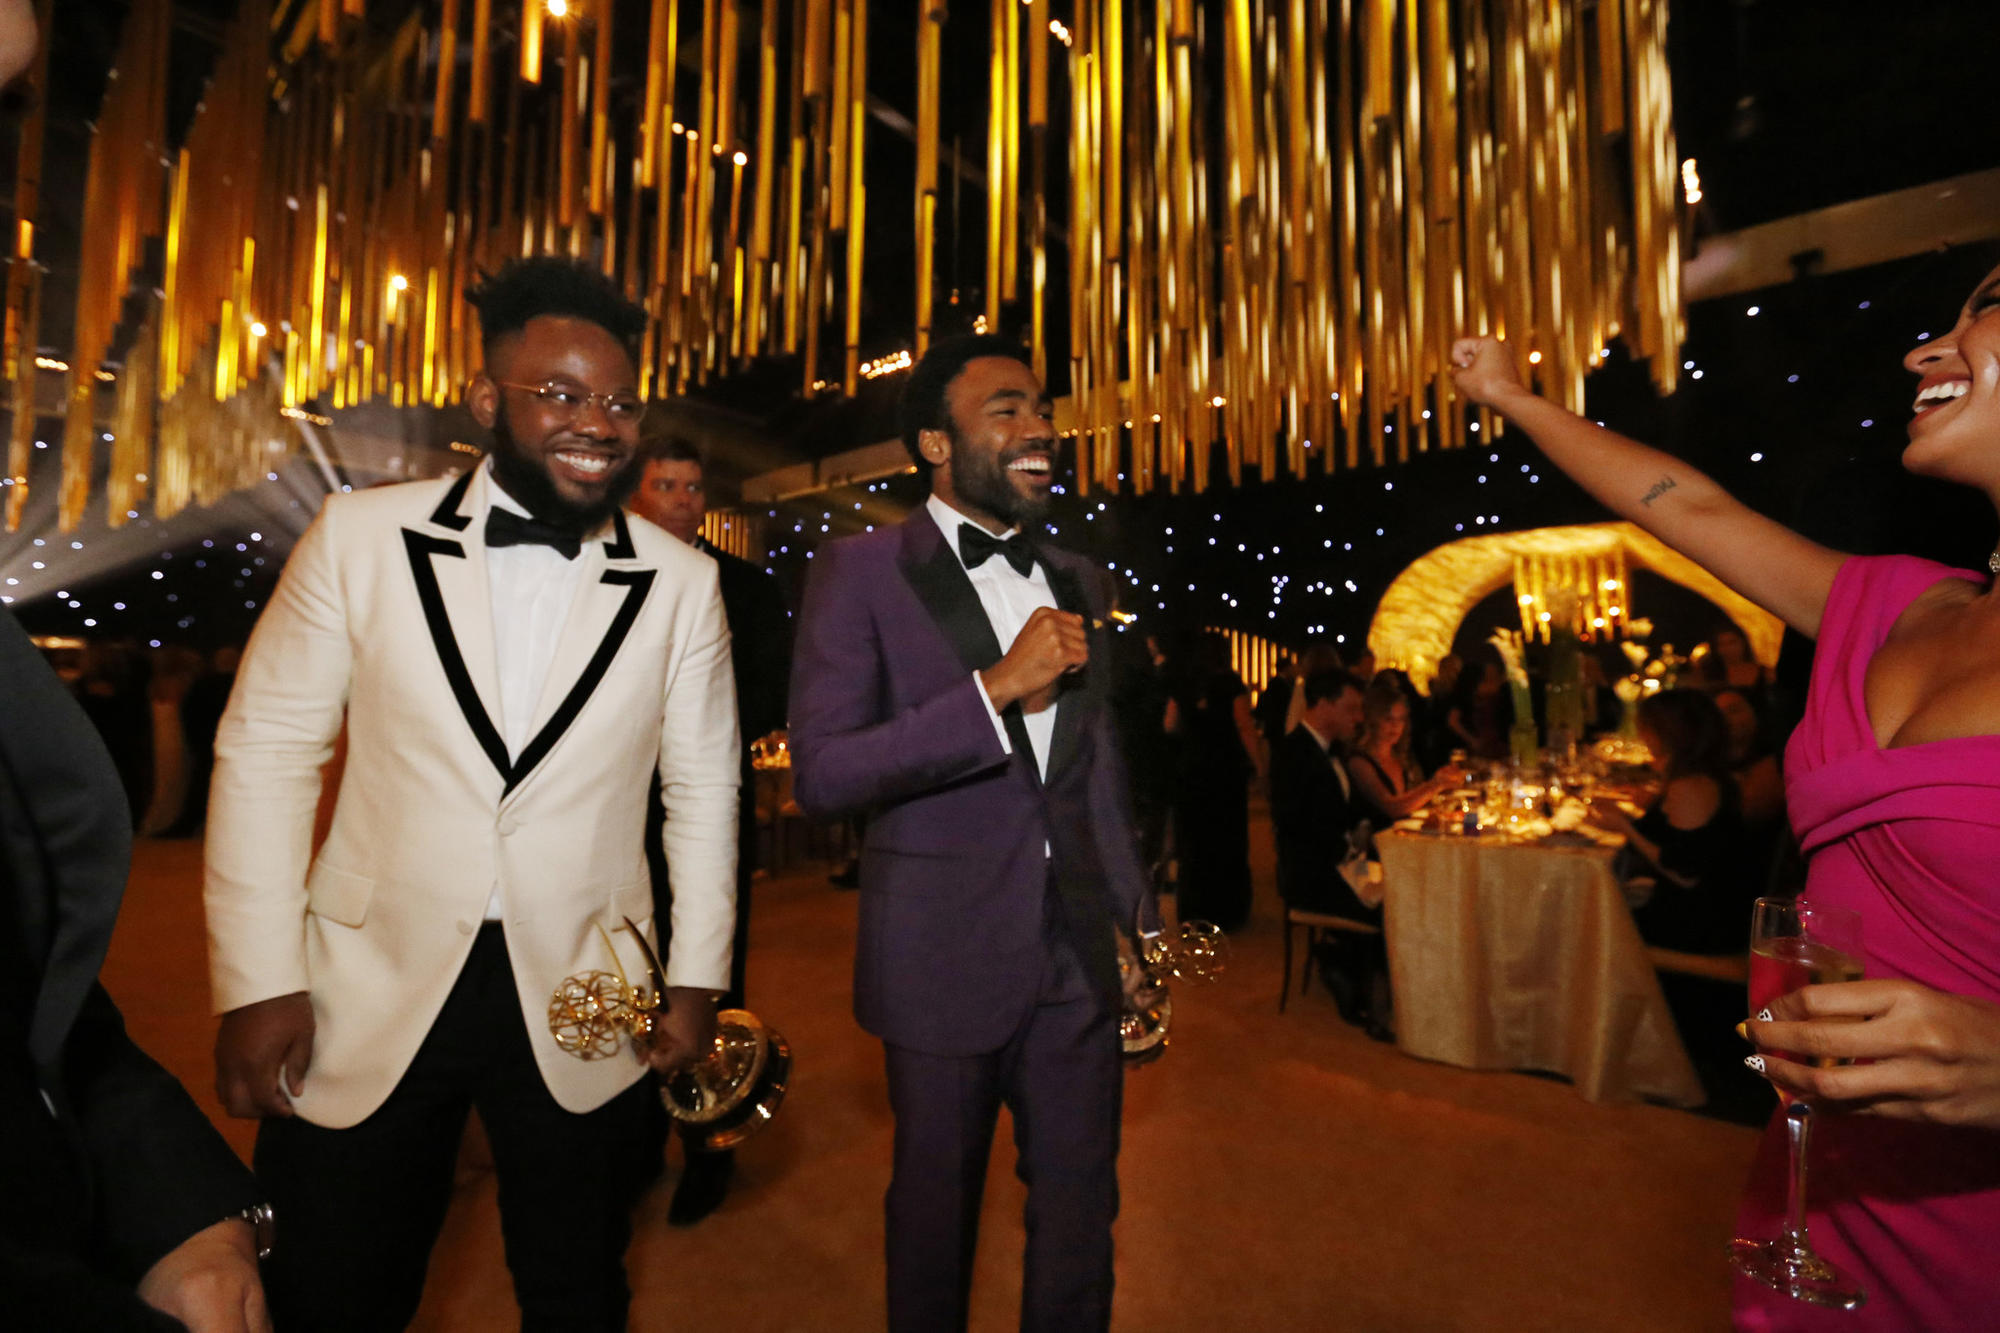 """Atlanta's"" Stephen Glover, left, and Donald Glover are all smiles at the Governors Ball. (11:27 a.m.: An earlier version of this caption misidentified Stephen Glover as Brian Tyree Henry.) (Al Seib / Los Angeles Times)"